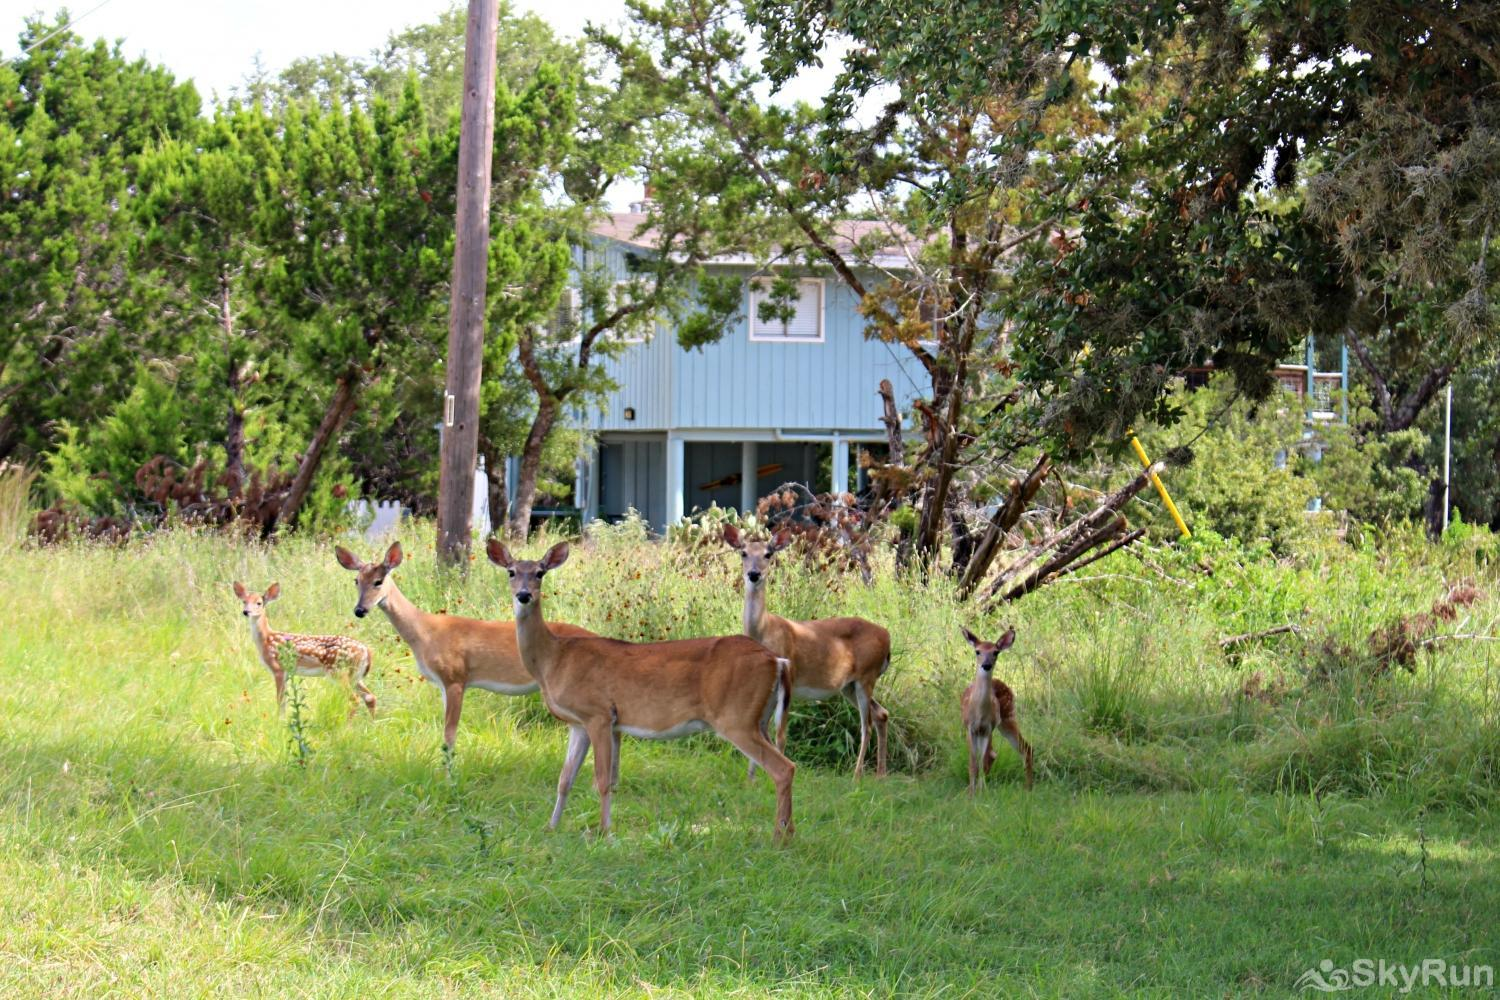 WATER'S EDGE RETREAT You're sure to see whitetail deer roaming the area